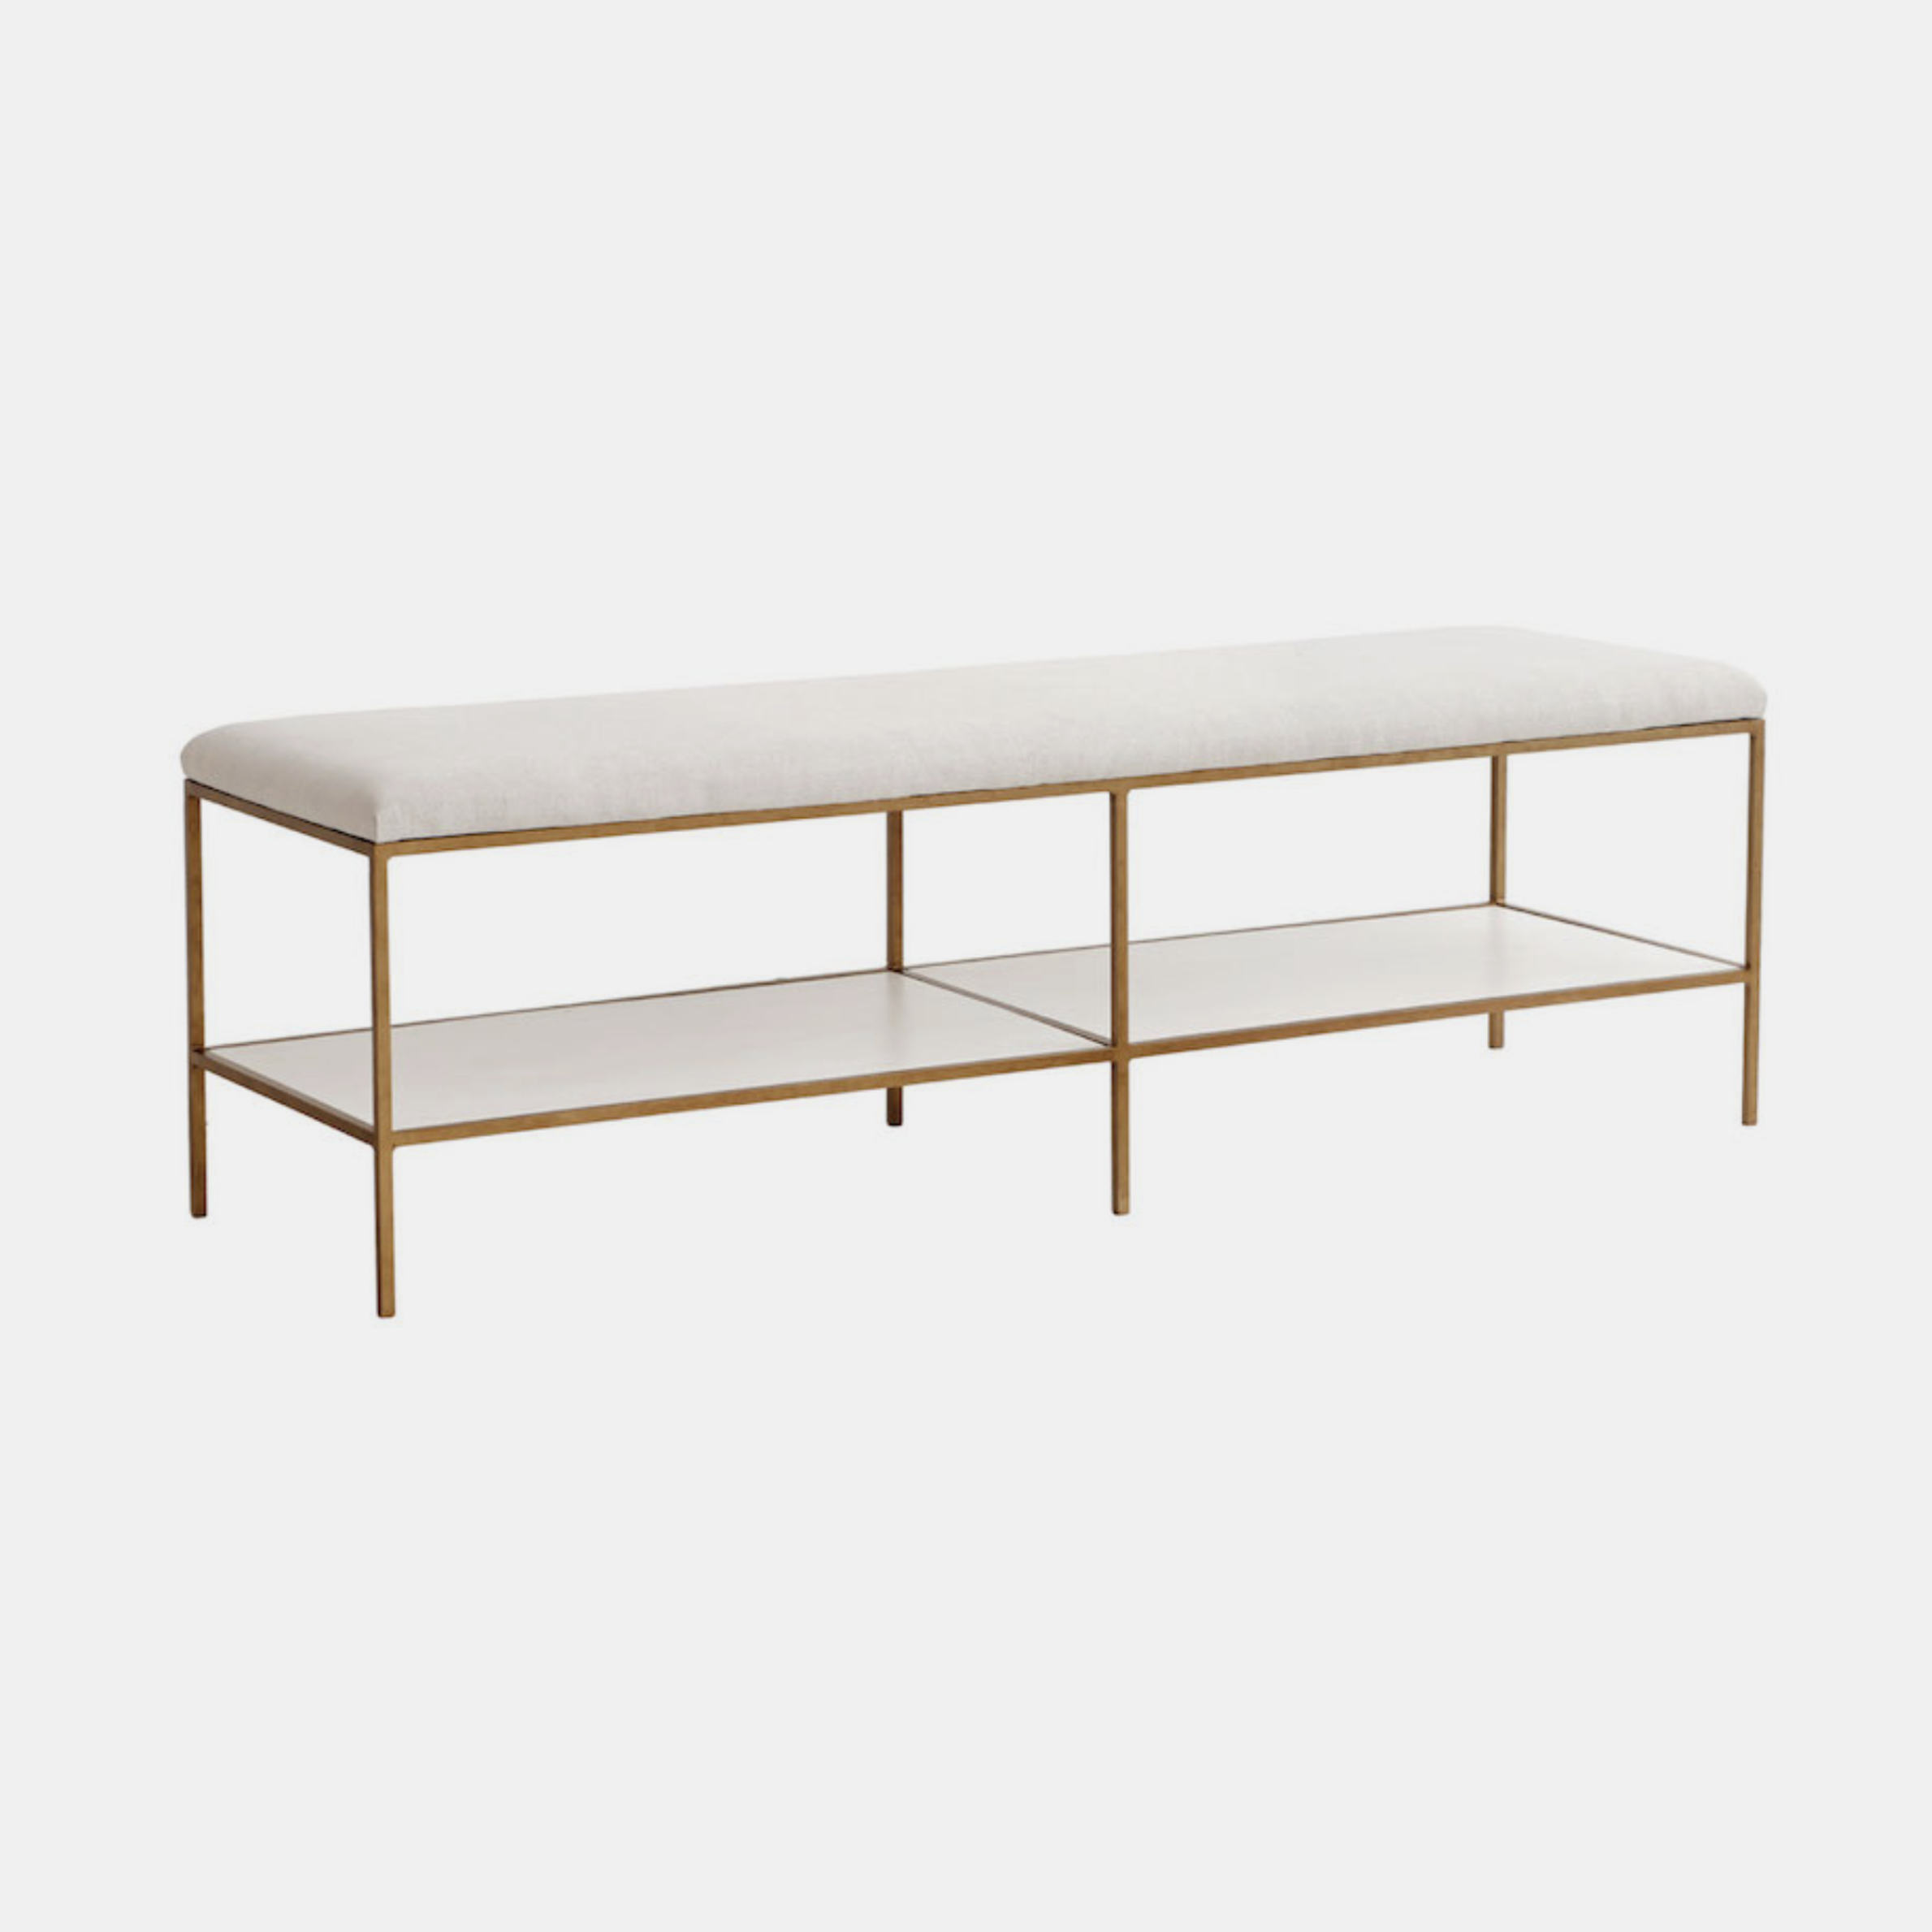 "Emerson Bench  60""w x 18""d x 18.5""h Available in several metal, wood (shelves), fabric, muslin, and leather finishes as well as COM. SKU4901RFH"